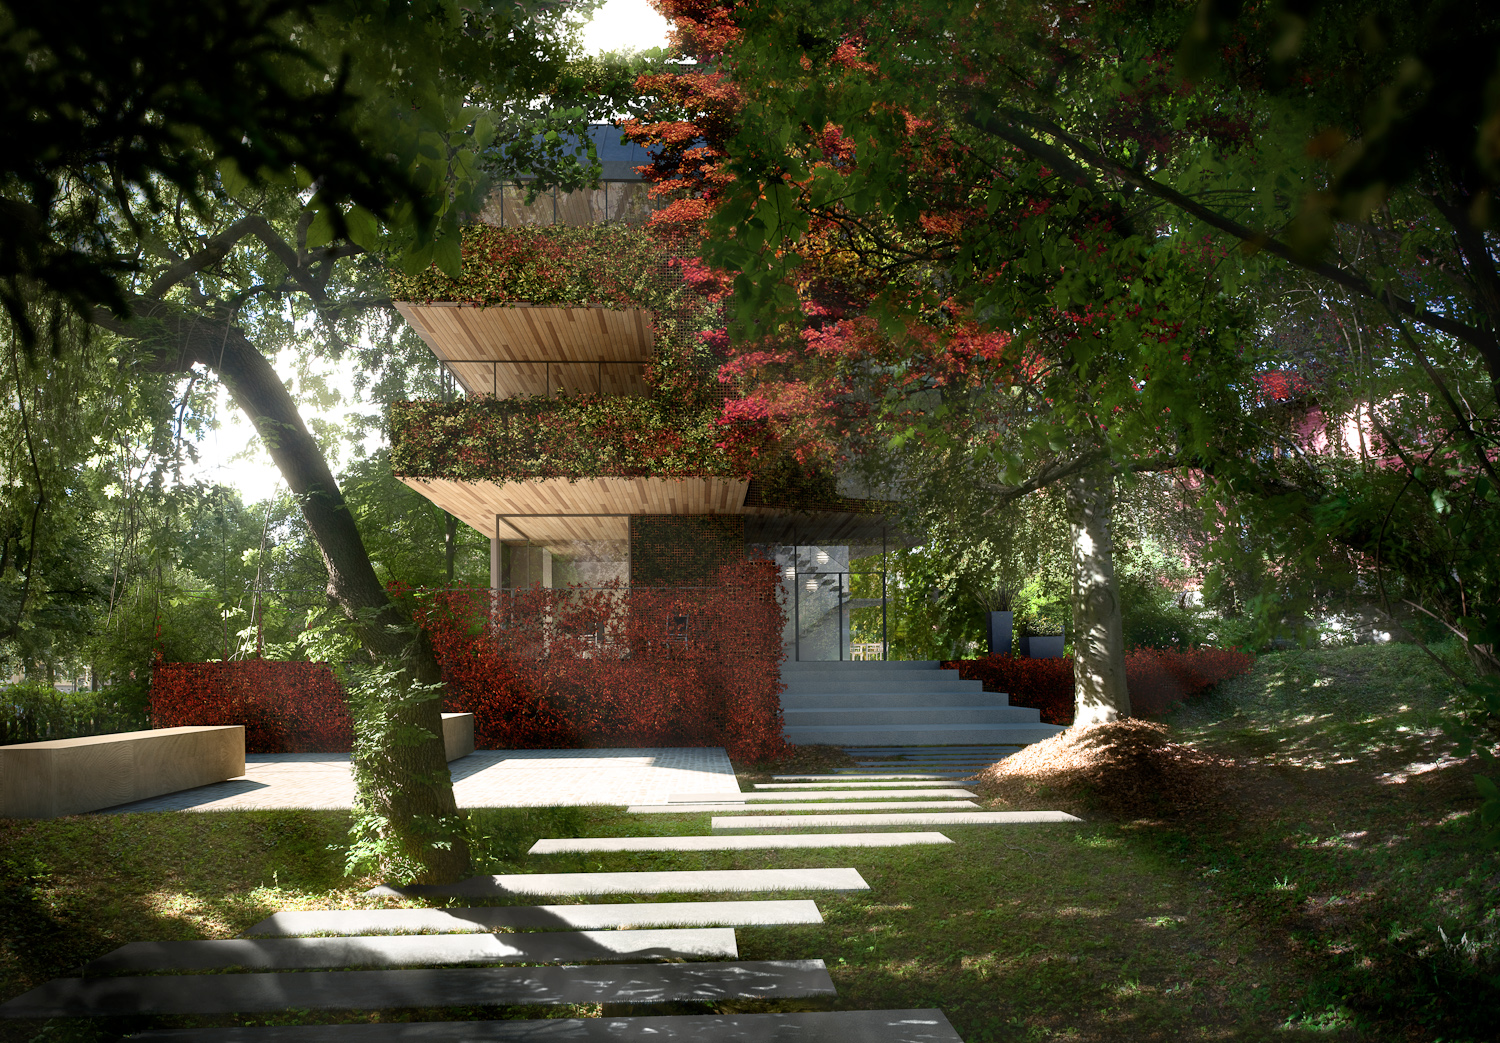 Architectural visualizations from 2009 architectural 3d awards for Ideal home 3d landscape design 12